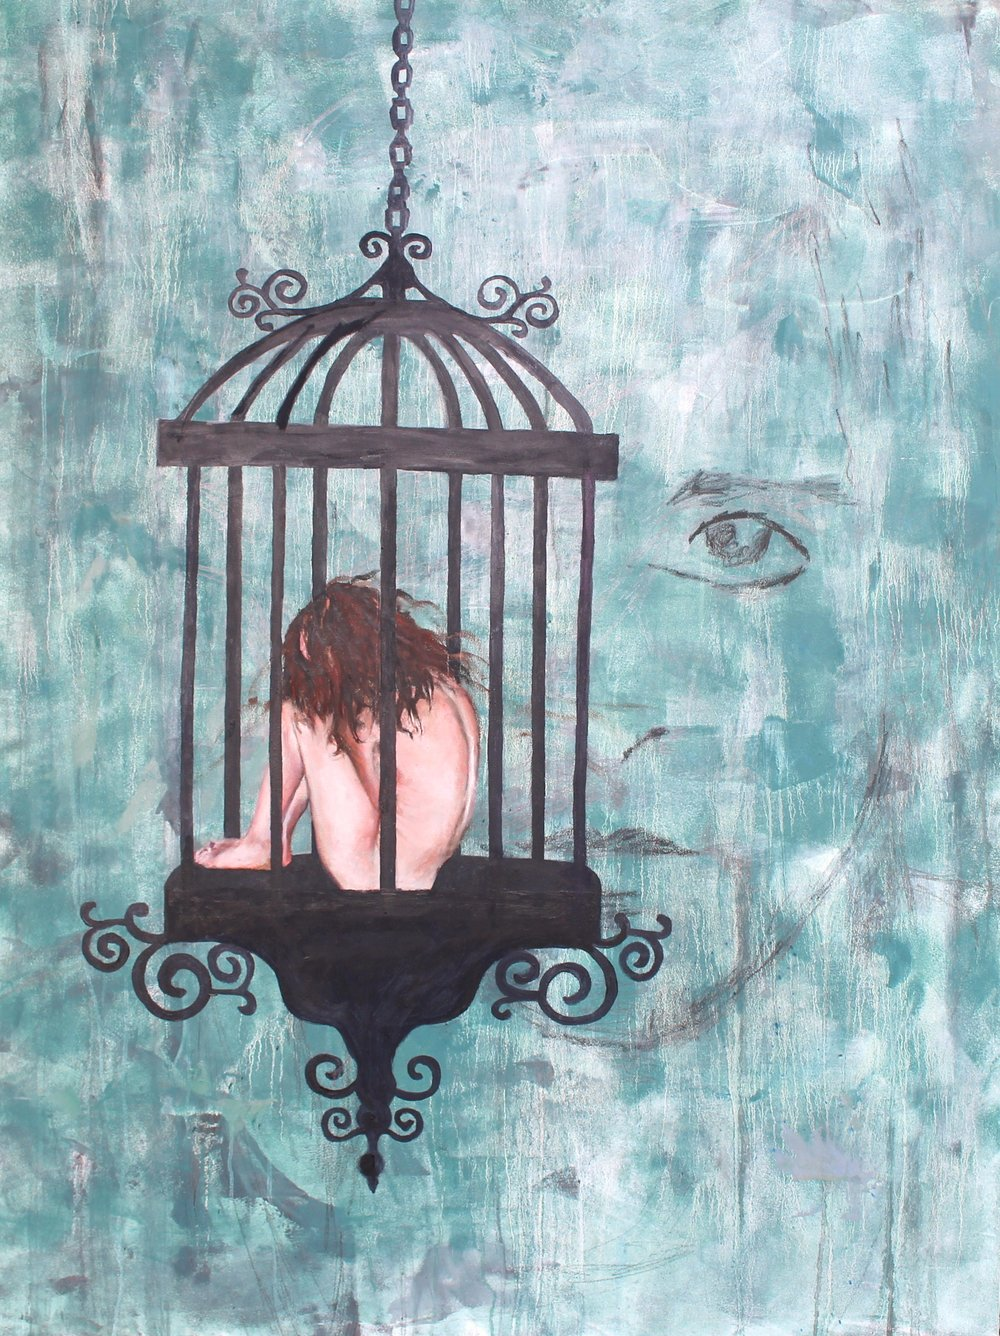 Caged Bird 36x48 Oil On Wood Commissioned for Public Display